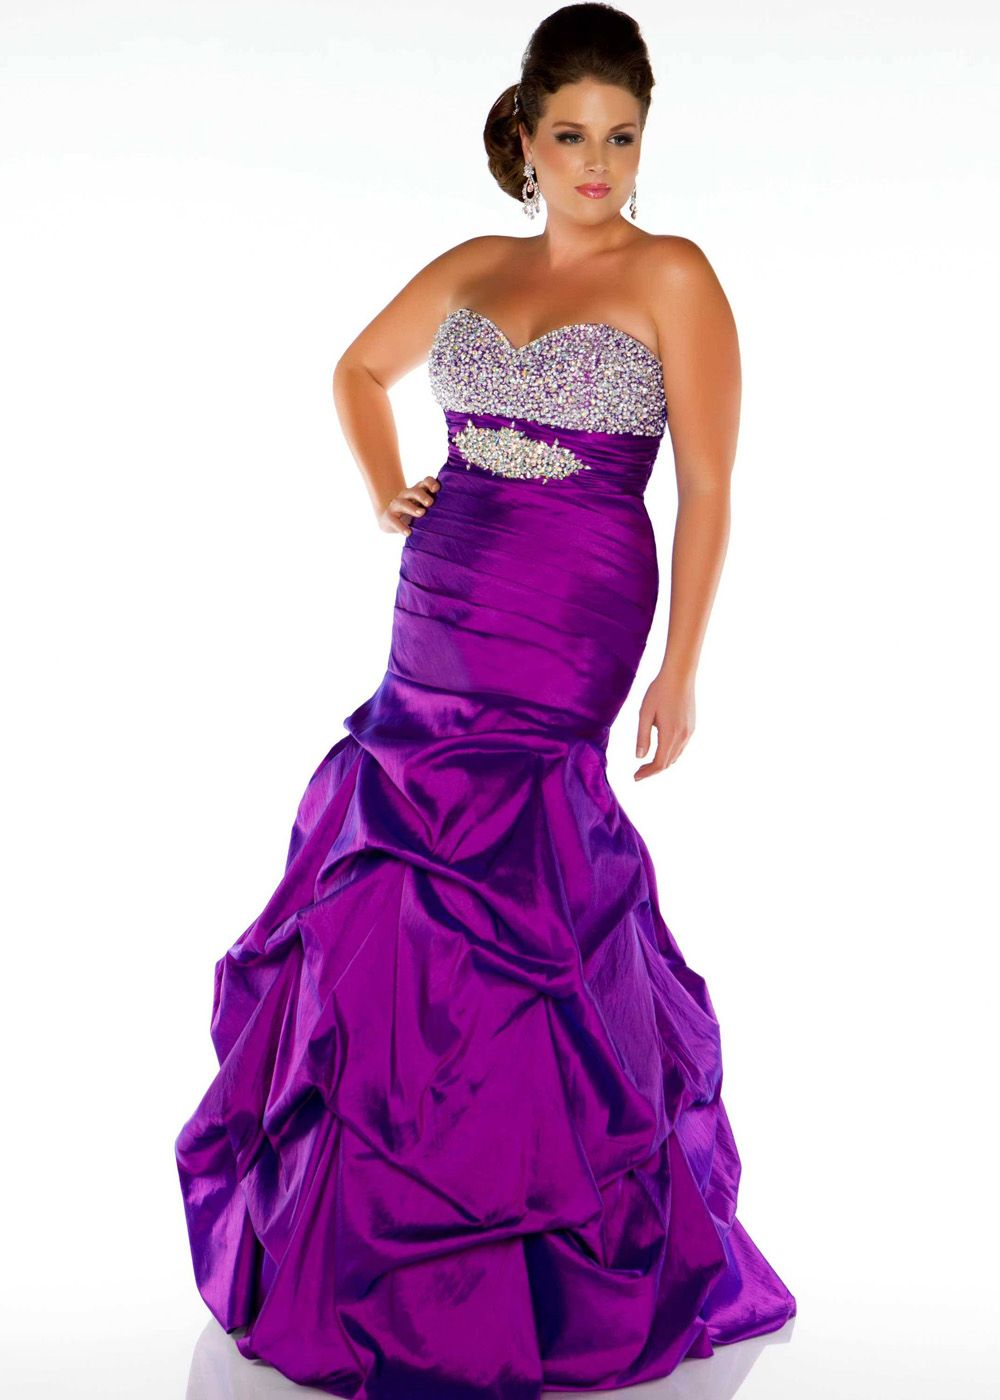 purple mermaid dress | ... Duggal 61322F- Purple Strapless Mermaid ...